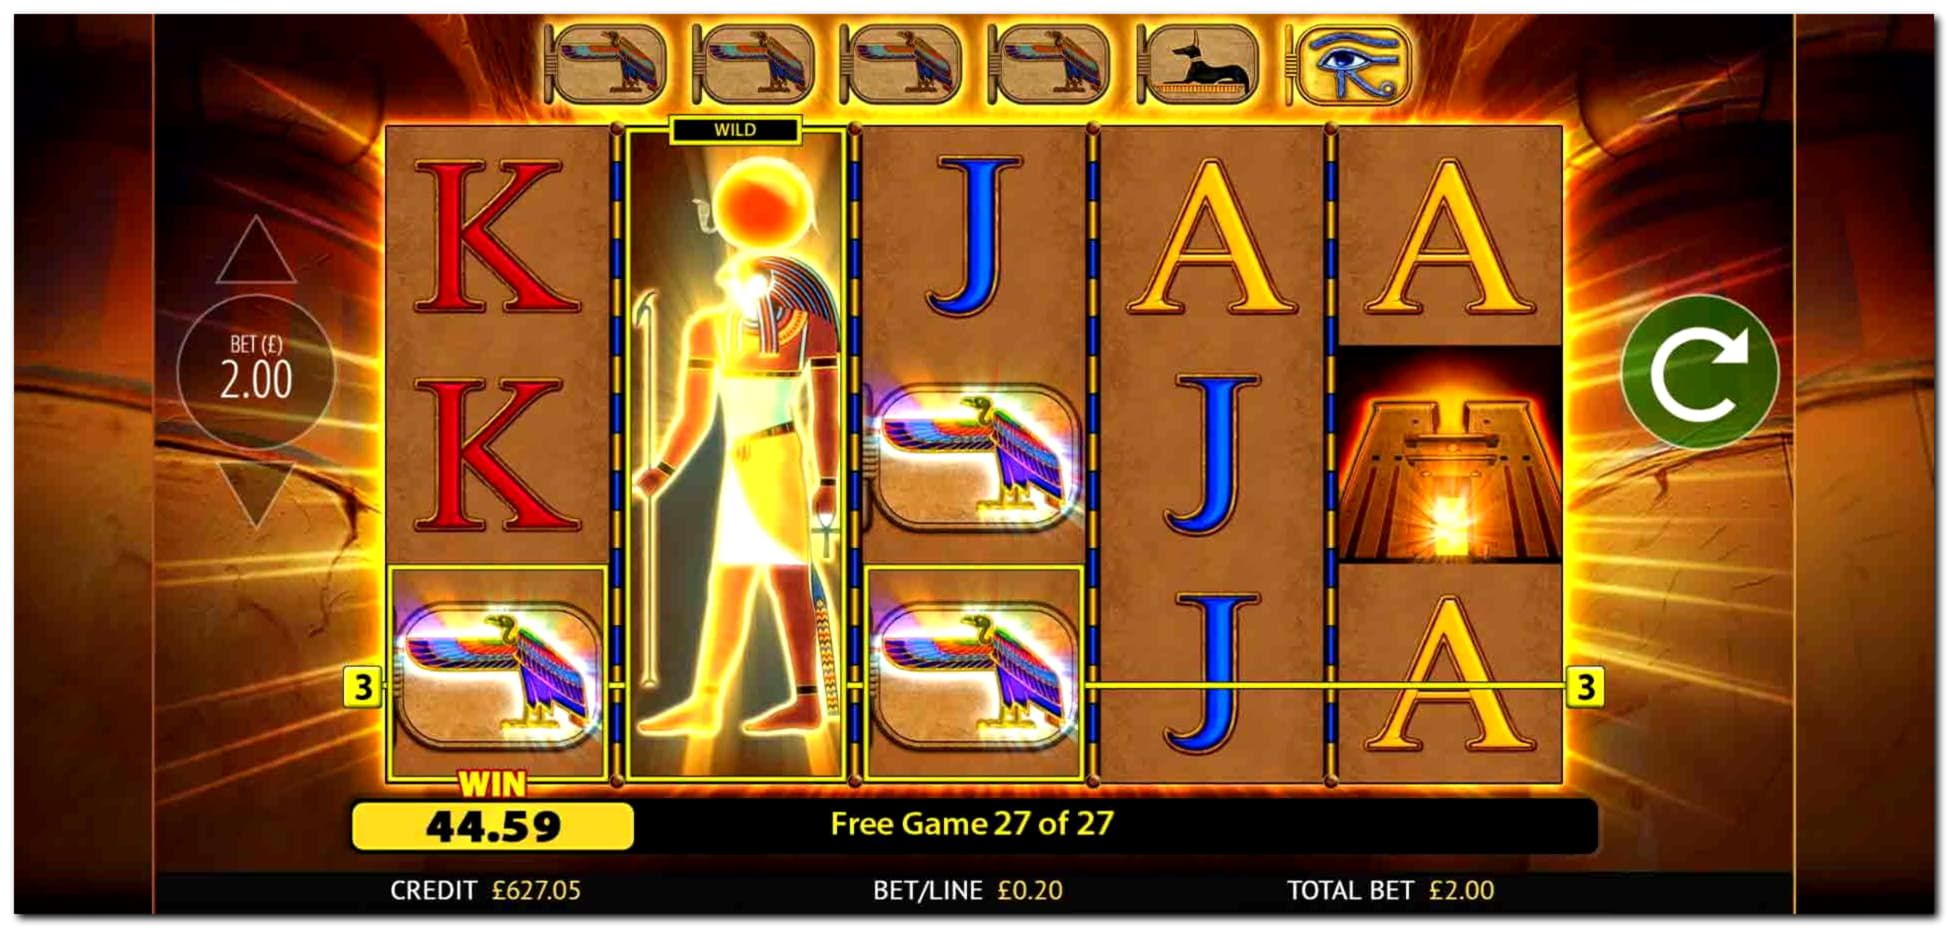 585 FREE Casino Chip at CasiPlay Casino (With images